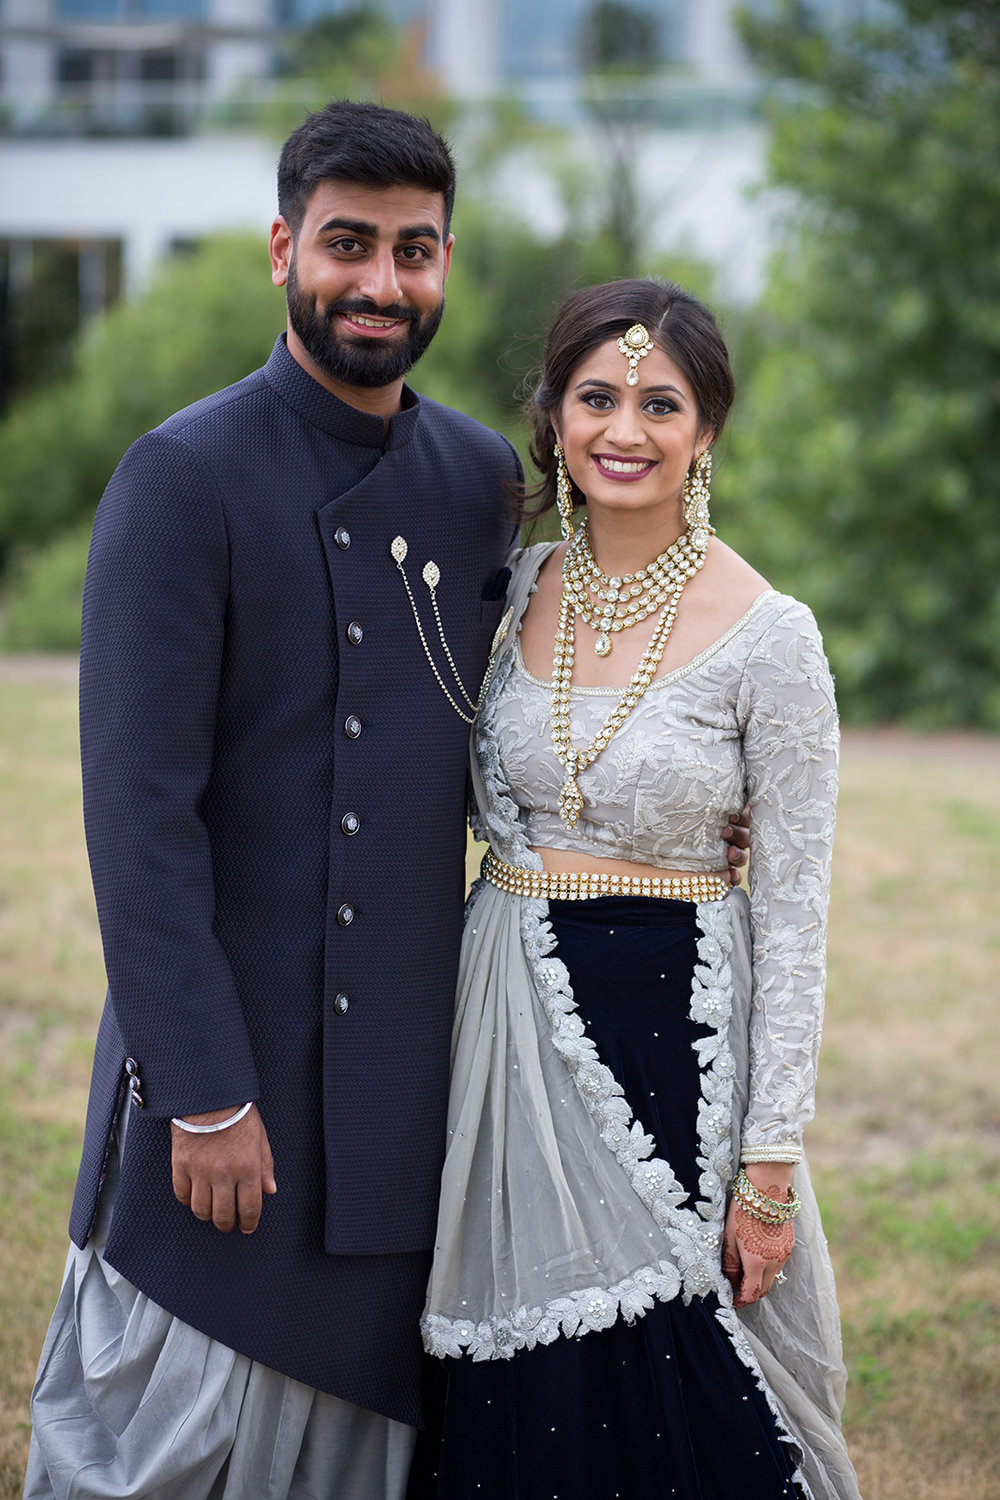 Le Cape Weddings - Rimi and Rohun - Garba Sneak Peek-2.jpg